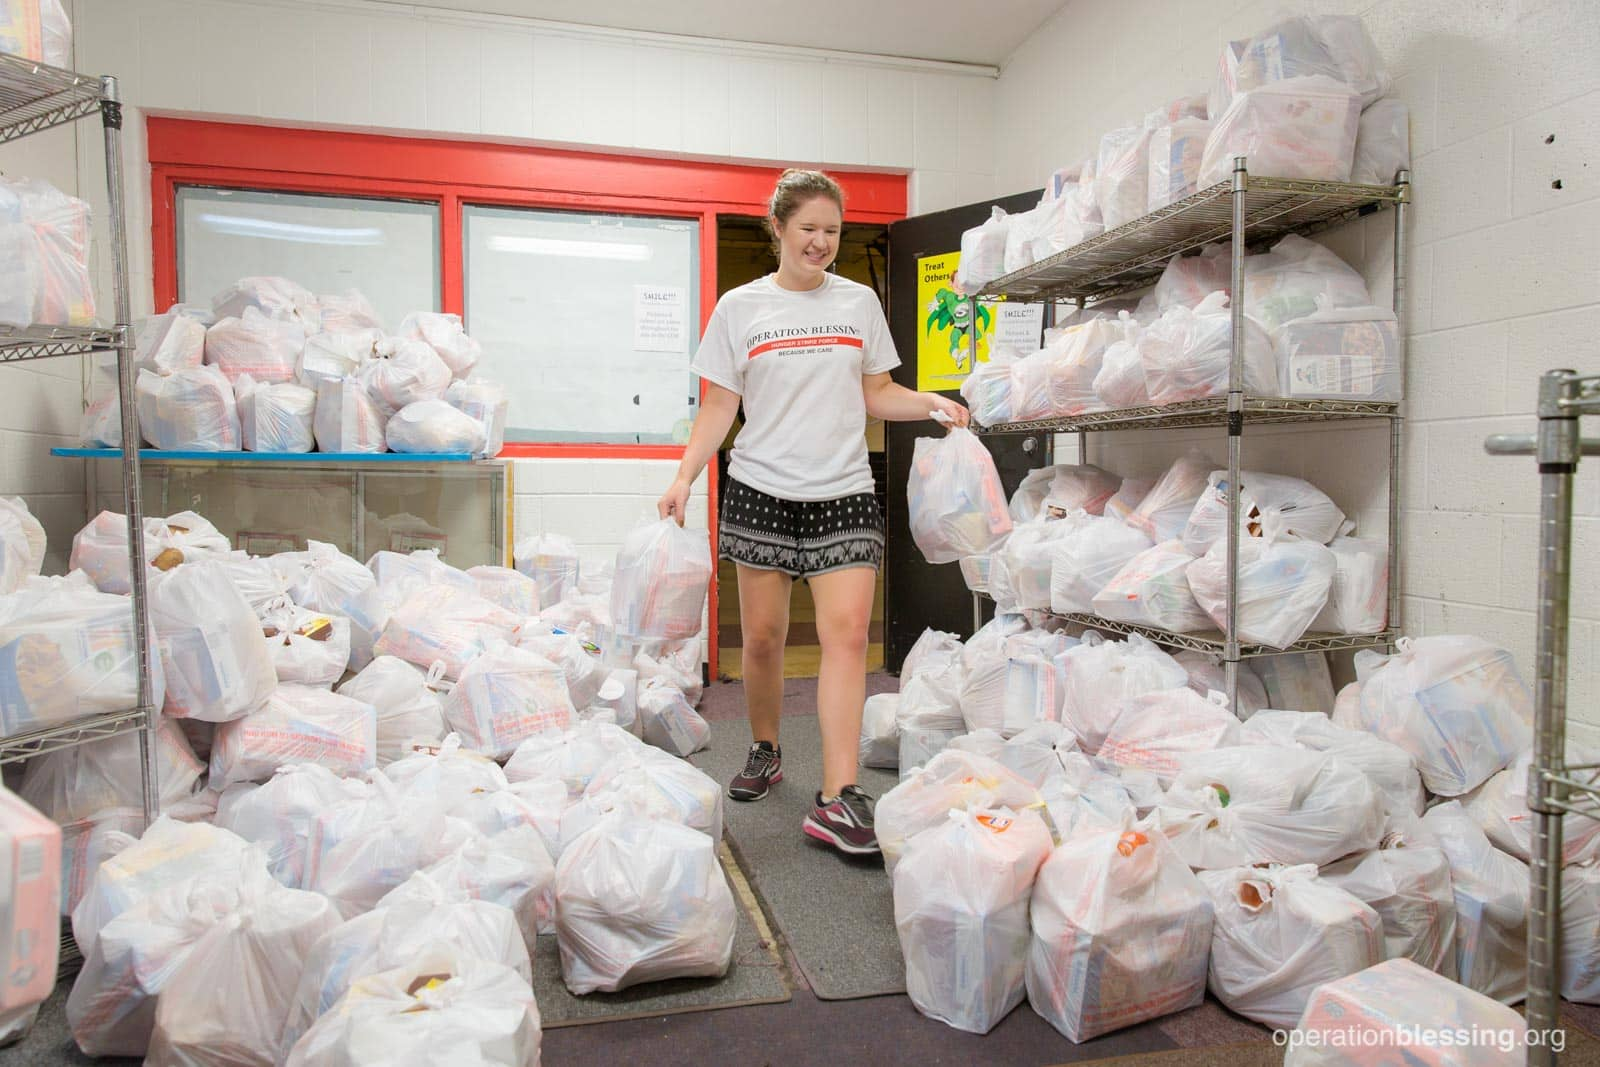 A volunteer organizes bags of groceries for Project Lunchbox.